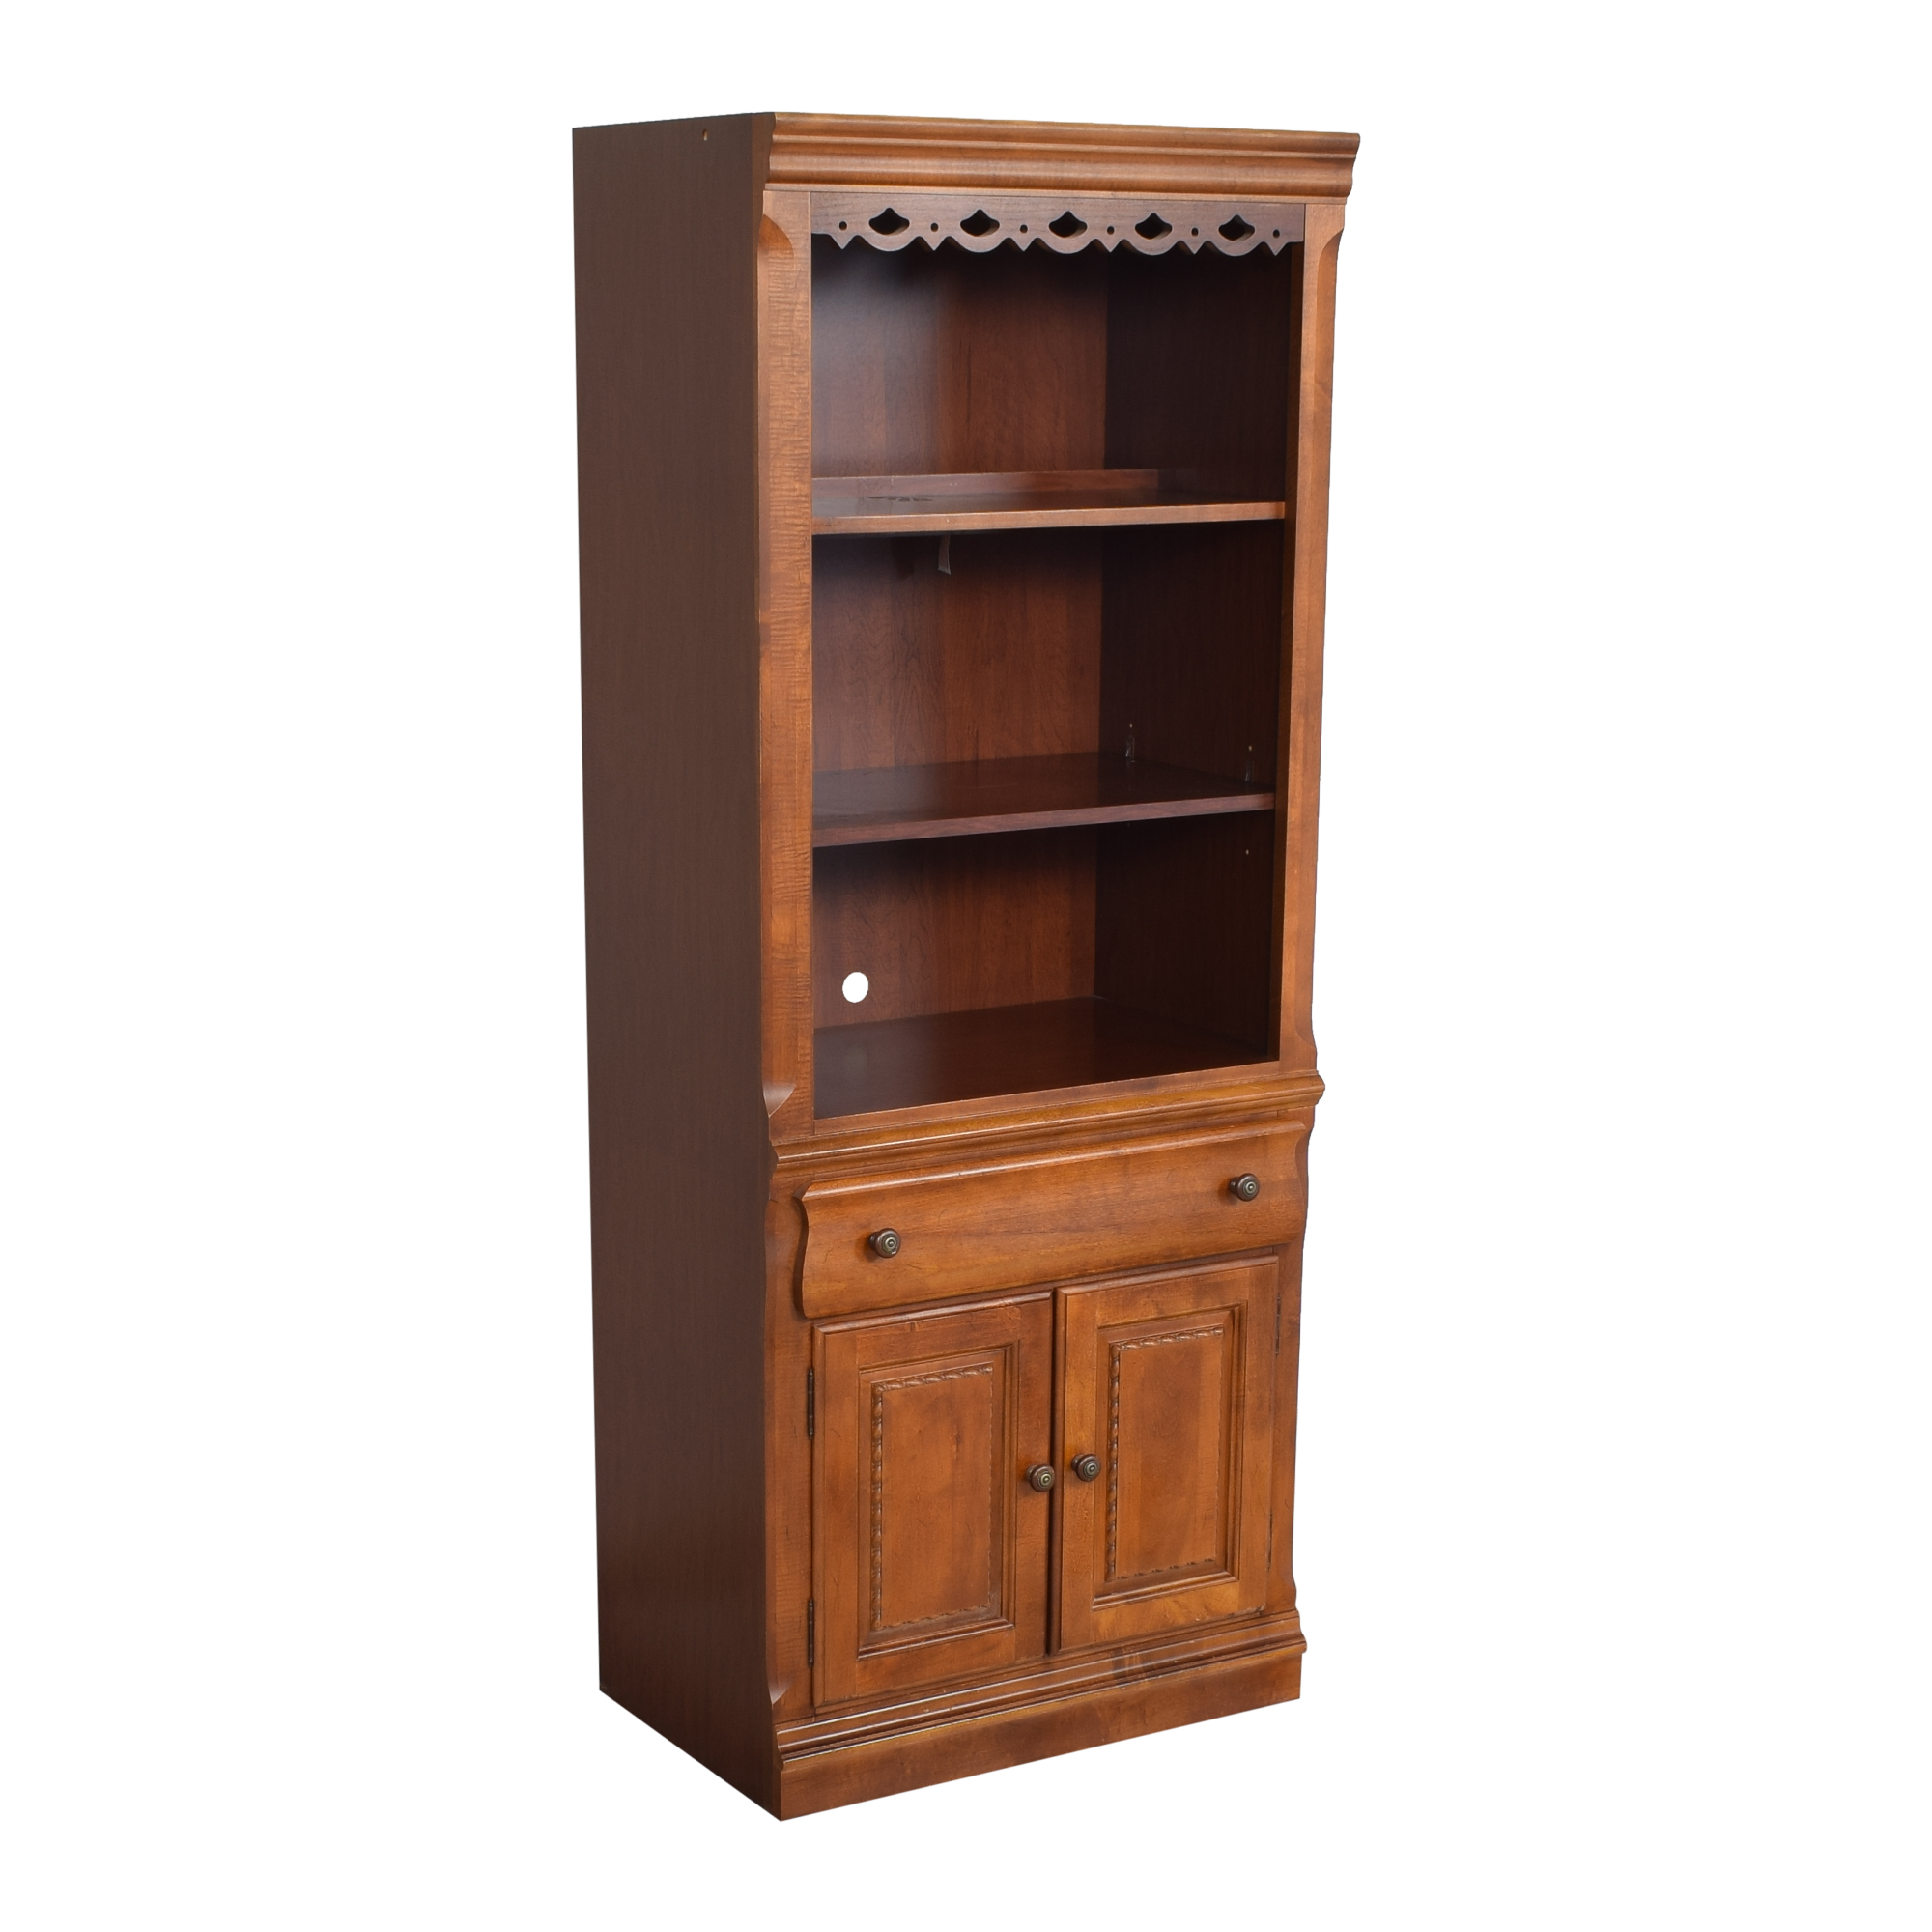 Broyhill Furniture Broyhill Furniture Lighted Bookcase on sale